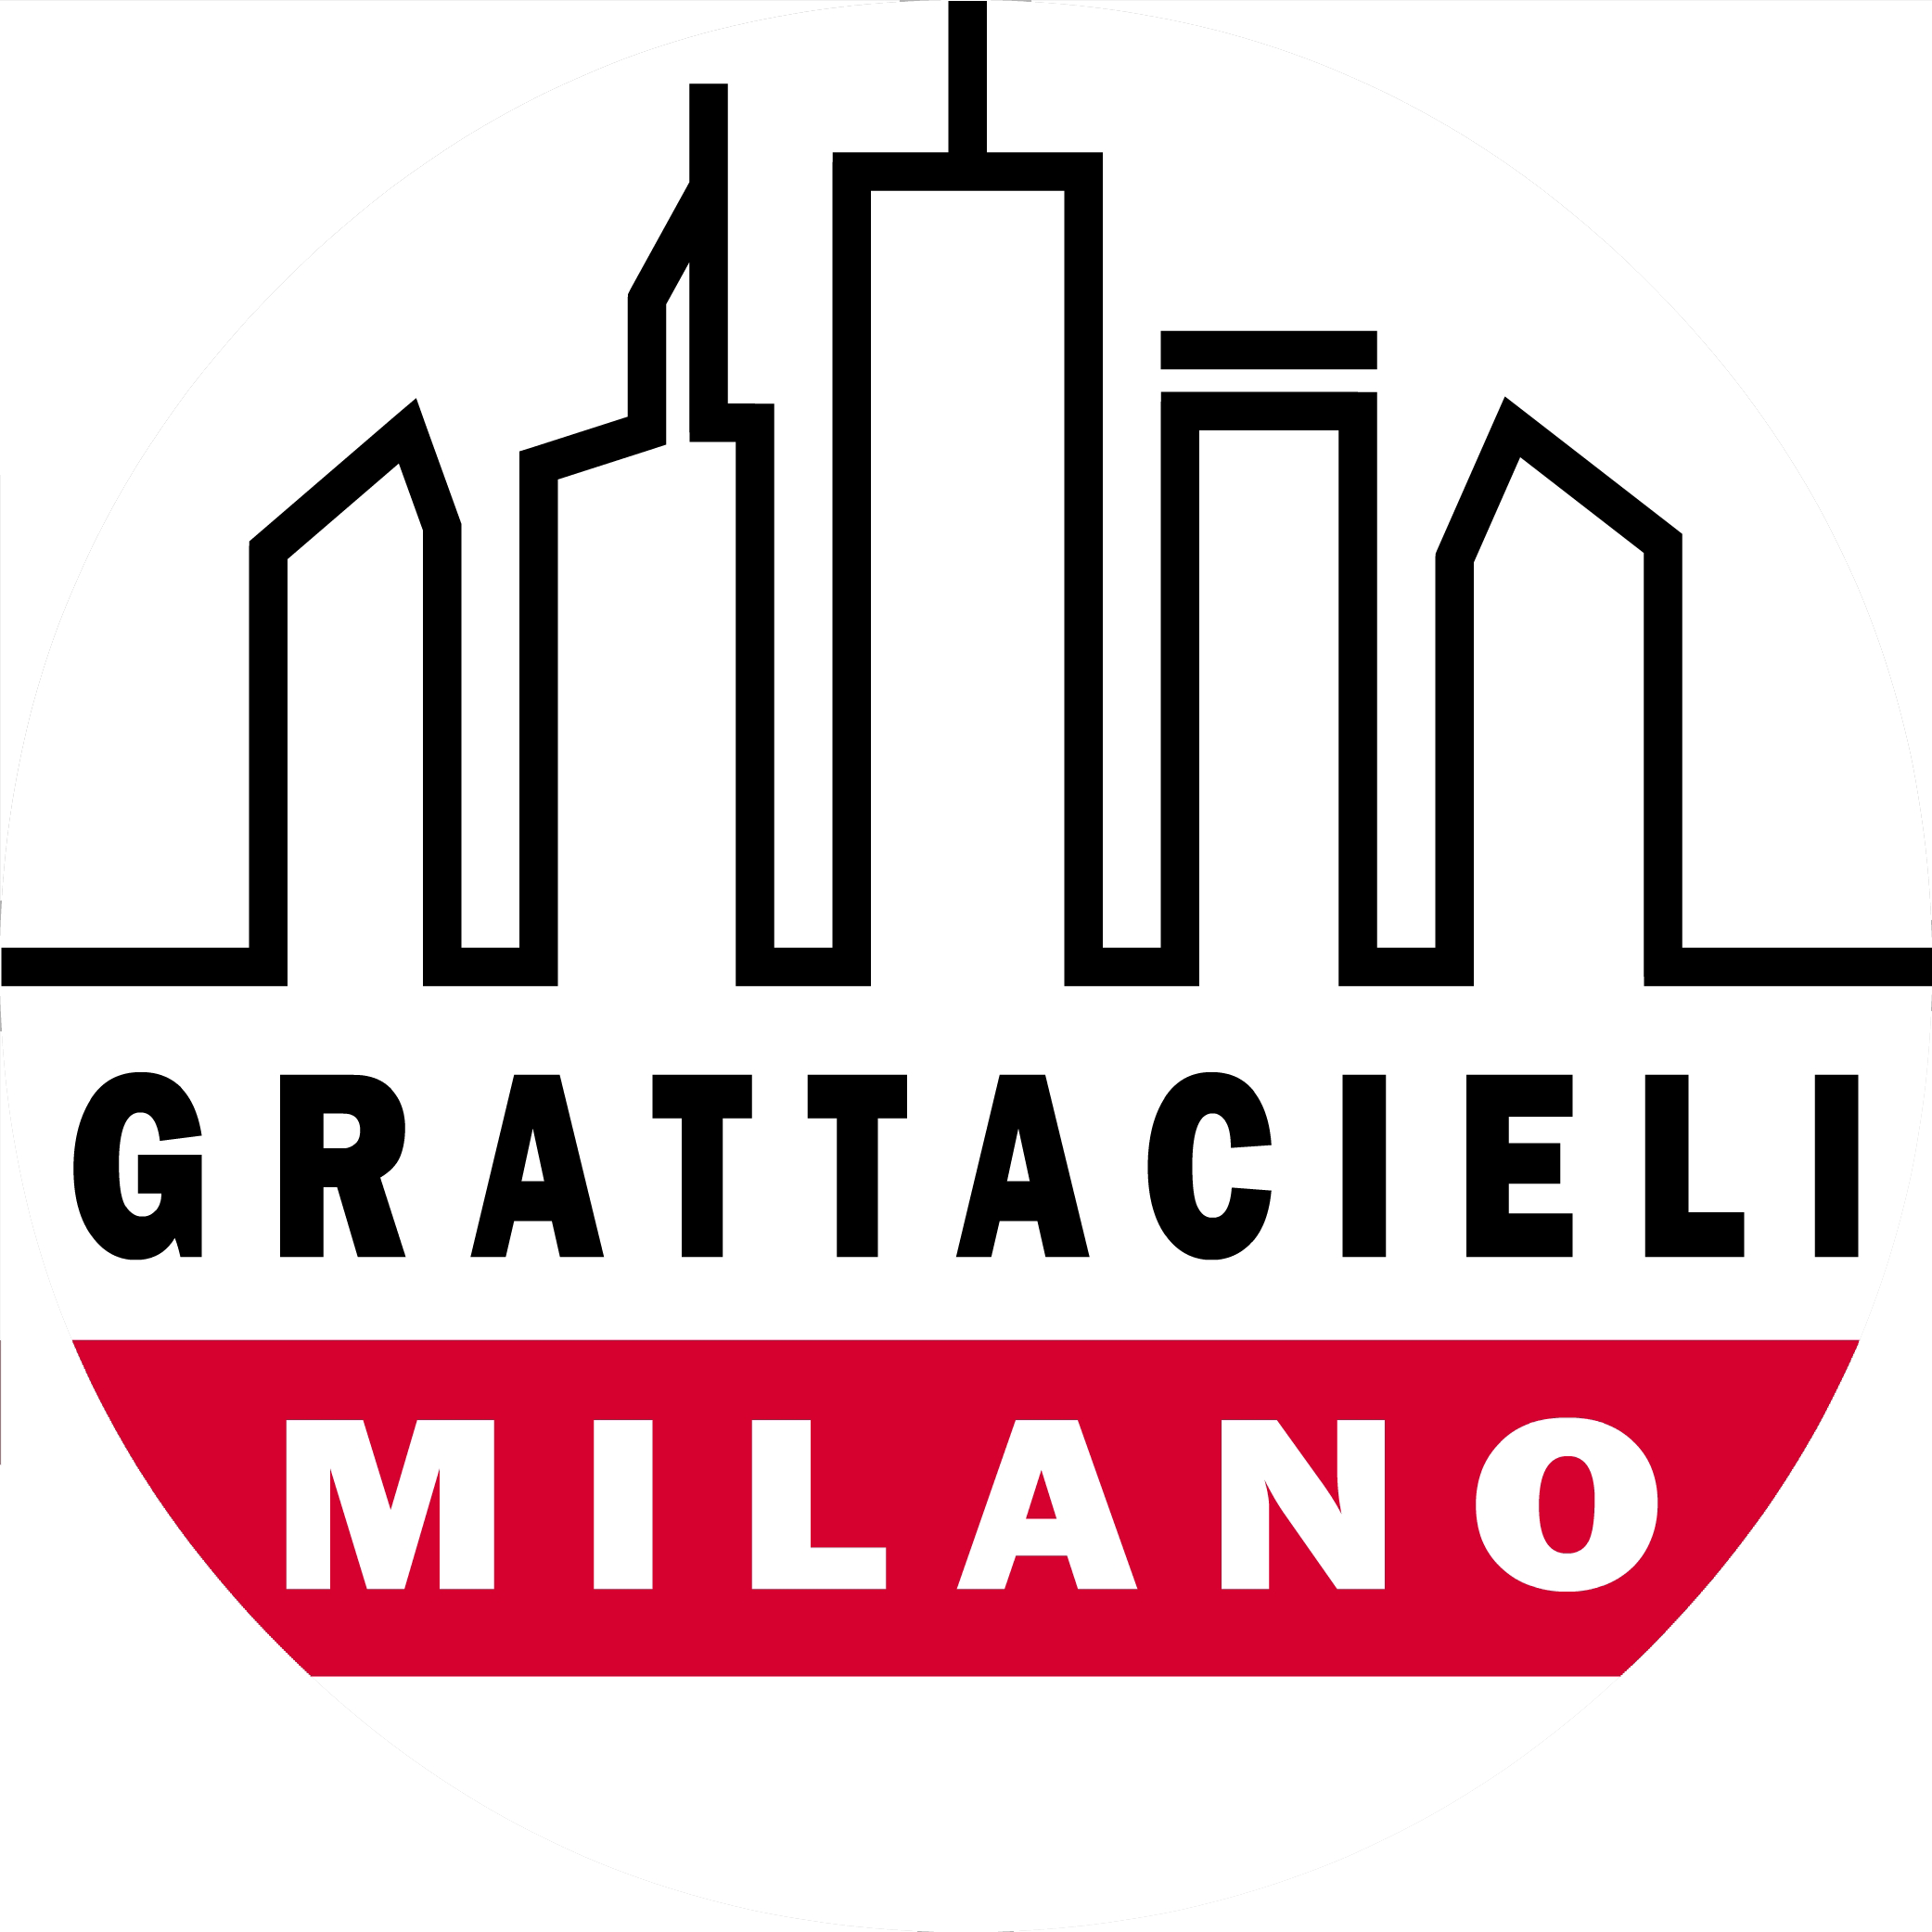 grattacielimilano.it